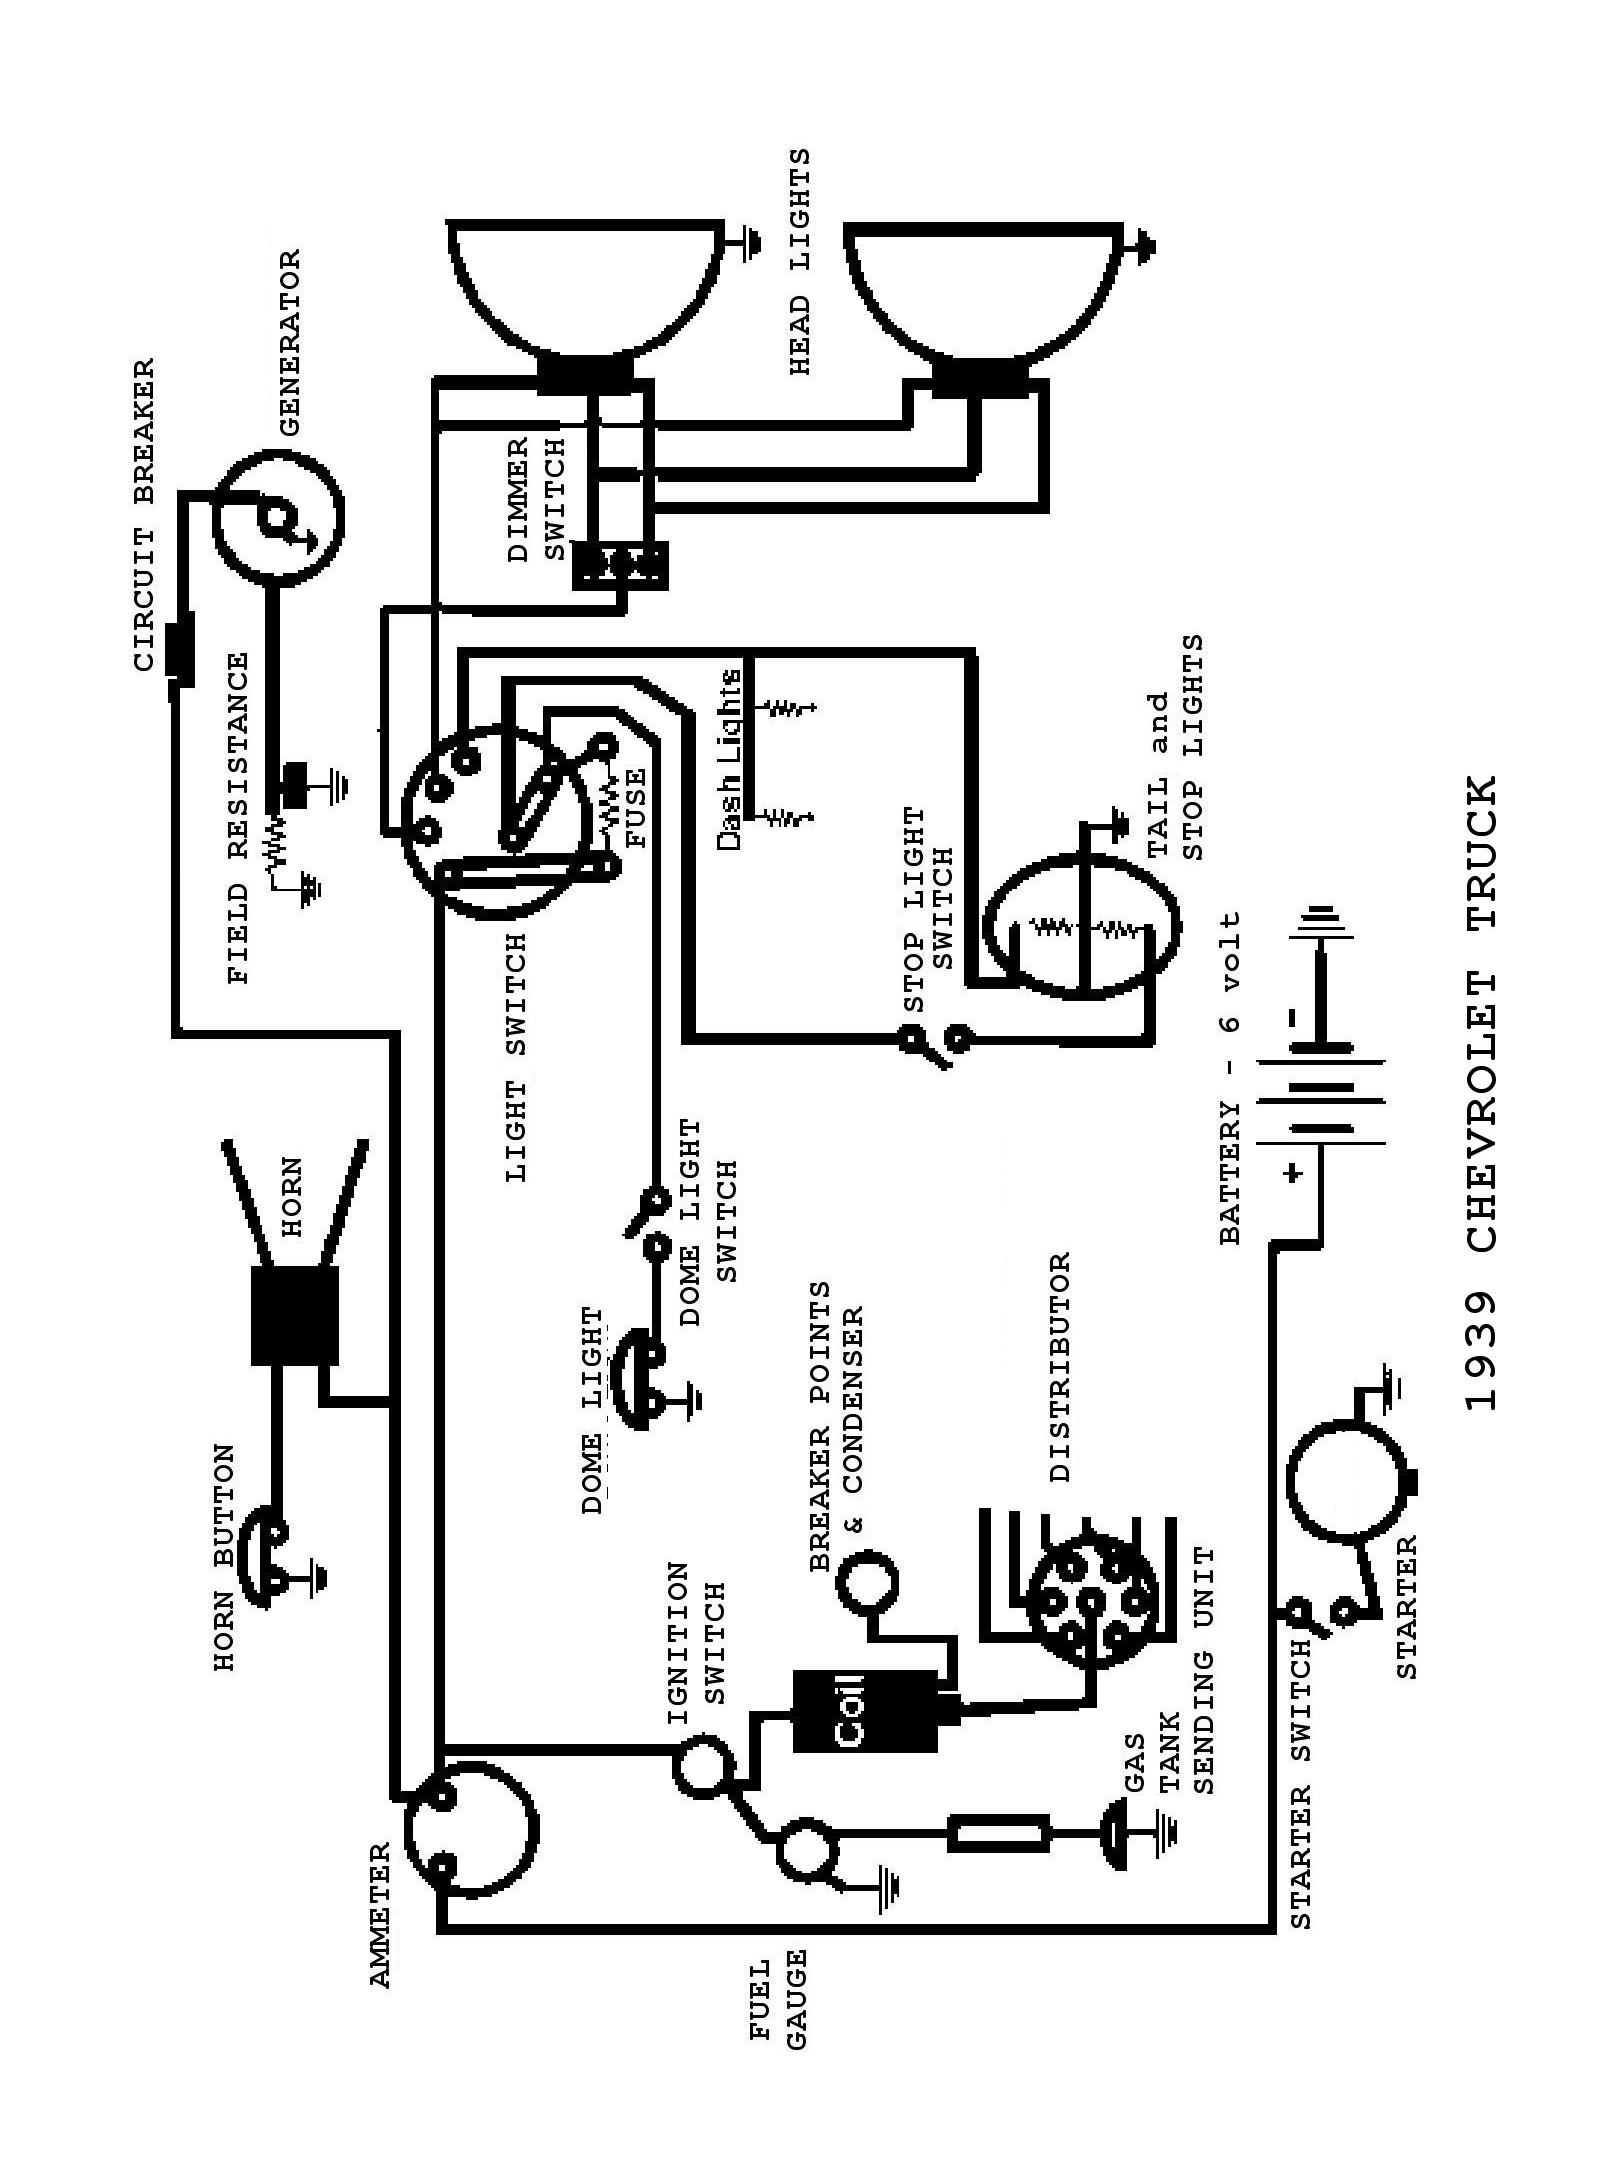 39truck ihc truck wiring diagrams mazda truck wiring diagrams \u2022 free 1979 Corvette Fuse Box Diagram at aneh.co